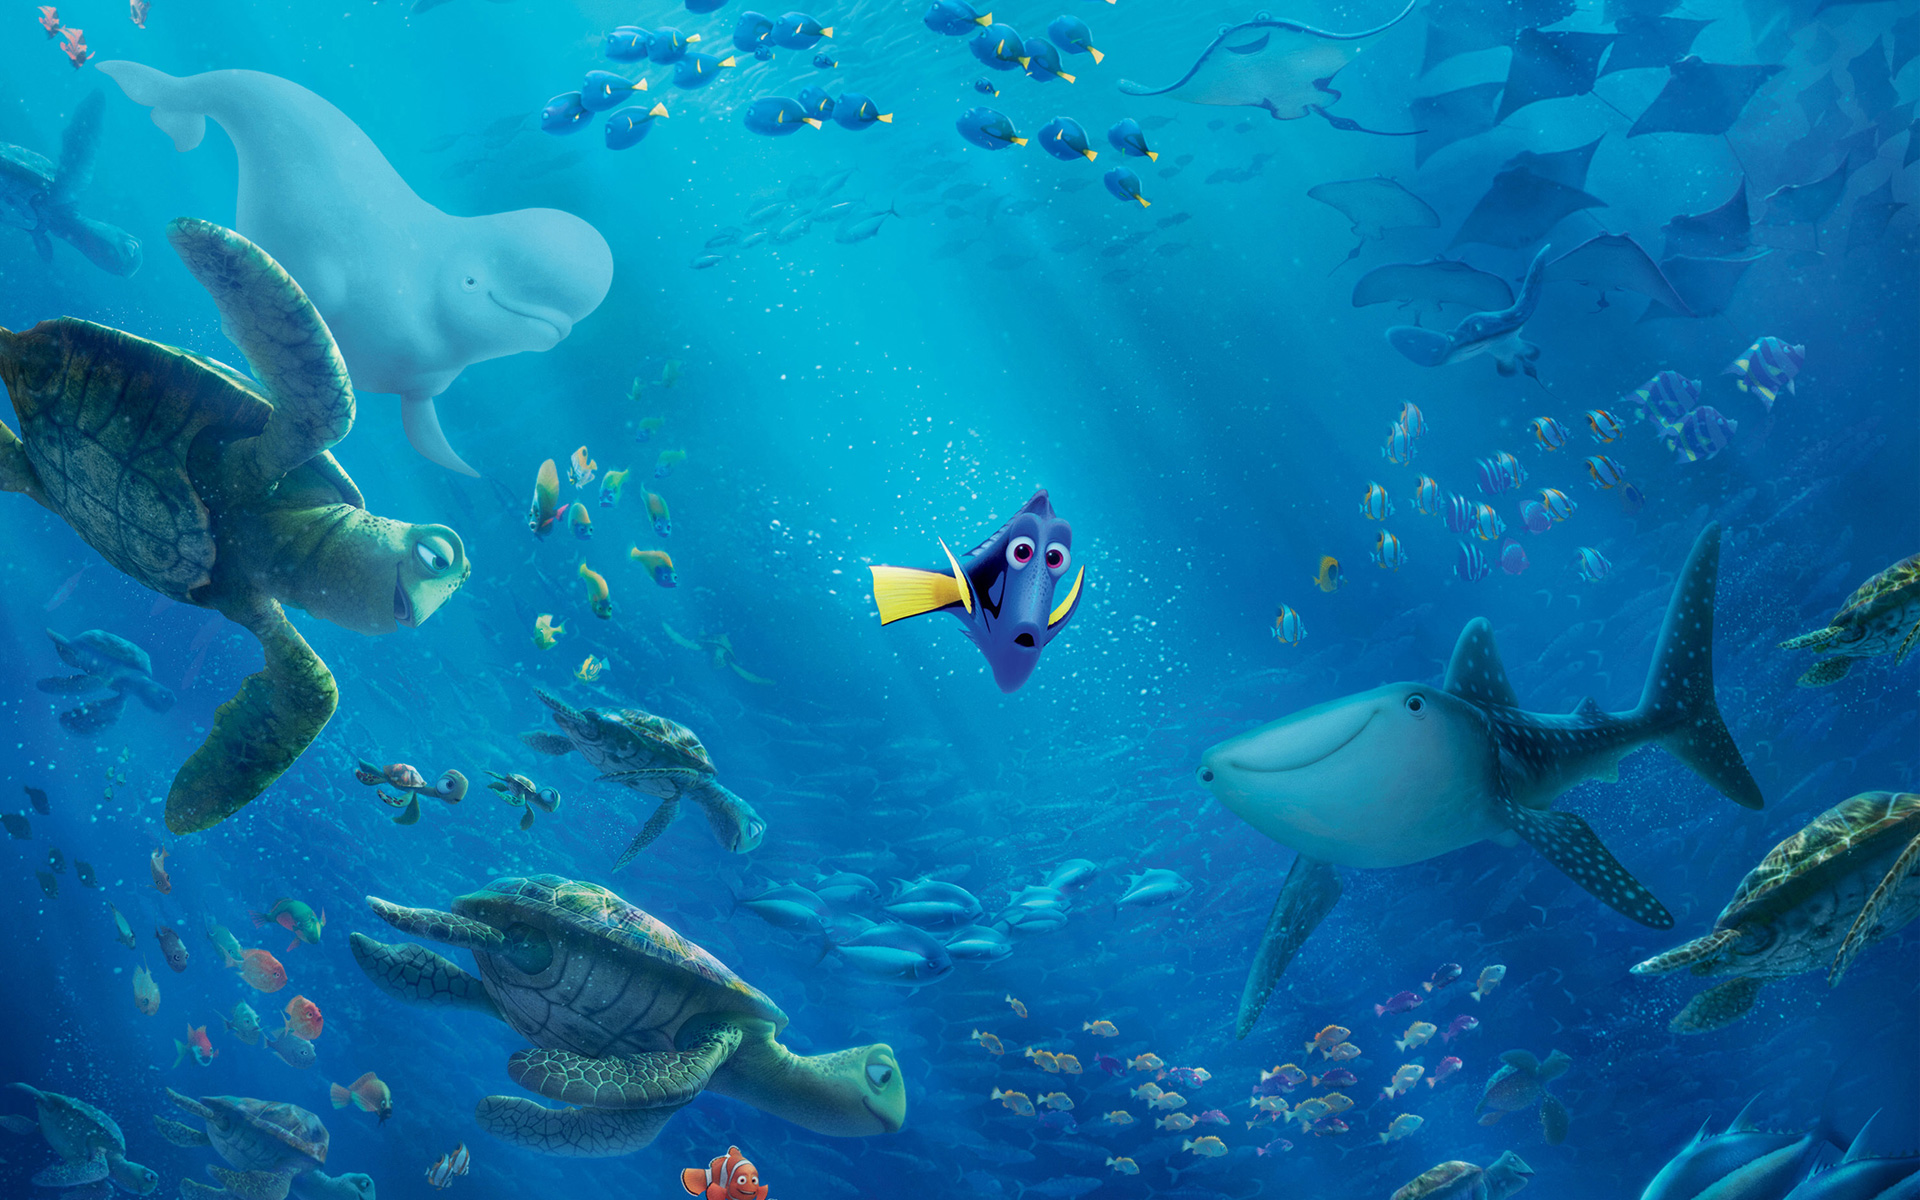 Buscando A Dory Wallpapers, Finding Dory Disney Fondos Hd